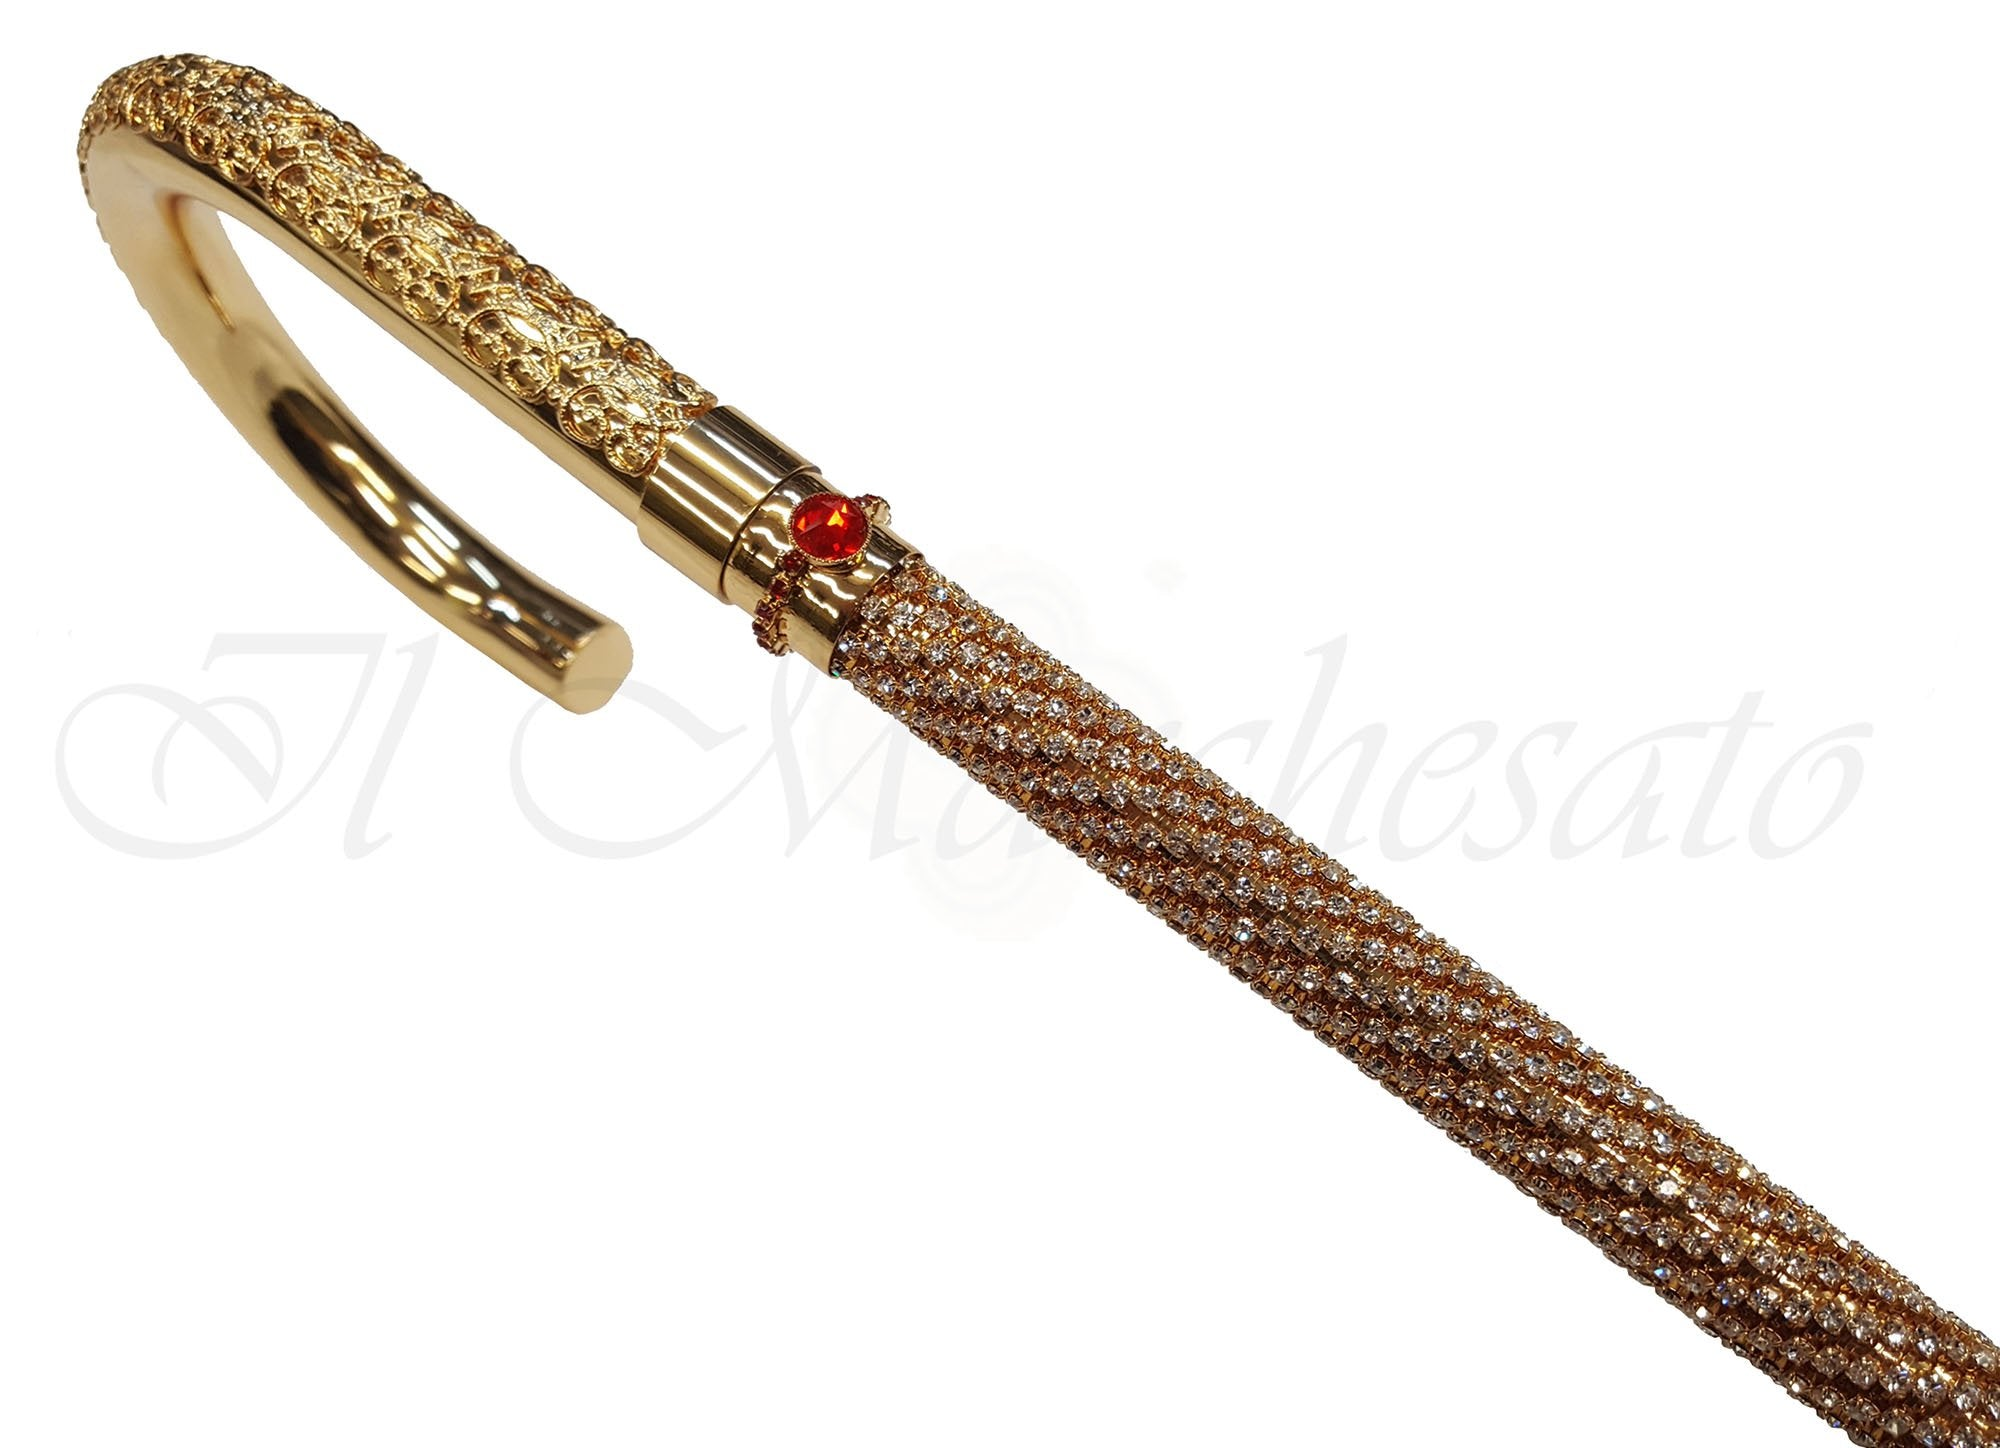 Luxury Walking Cane Encrusted with Swarovski Crystals - il-marchesato